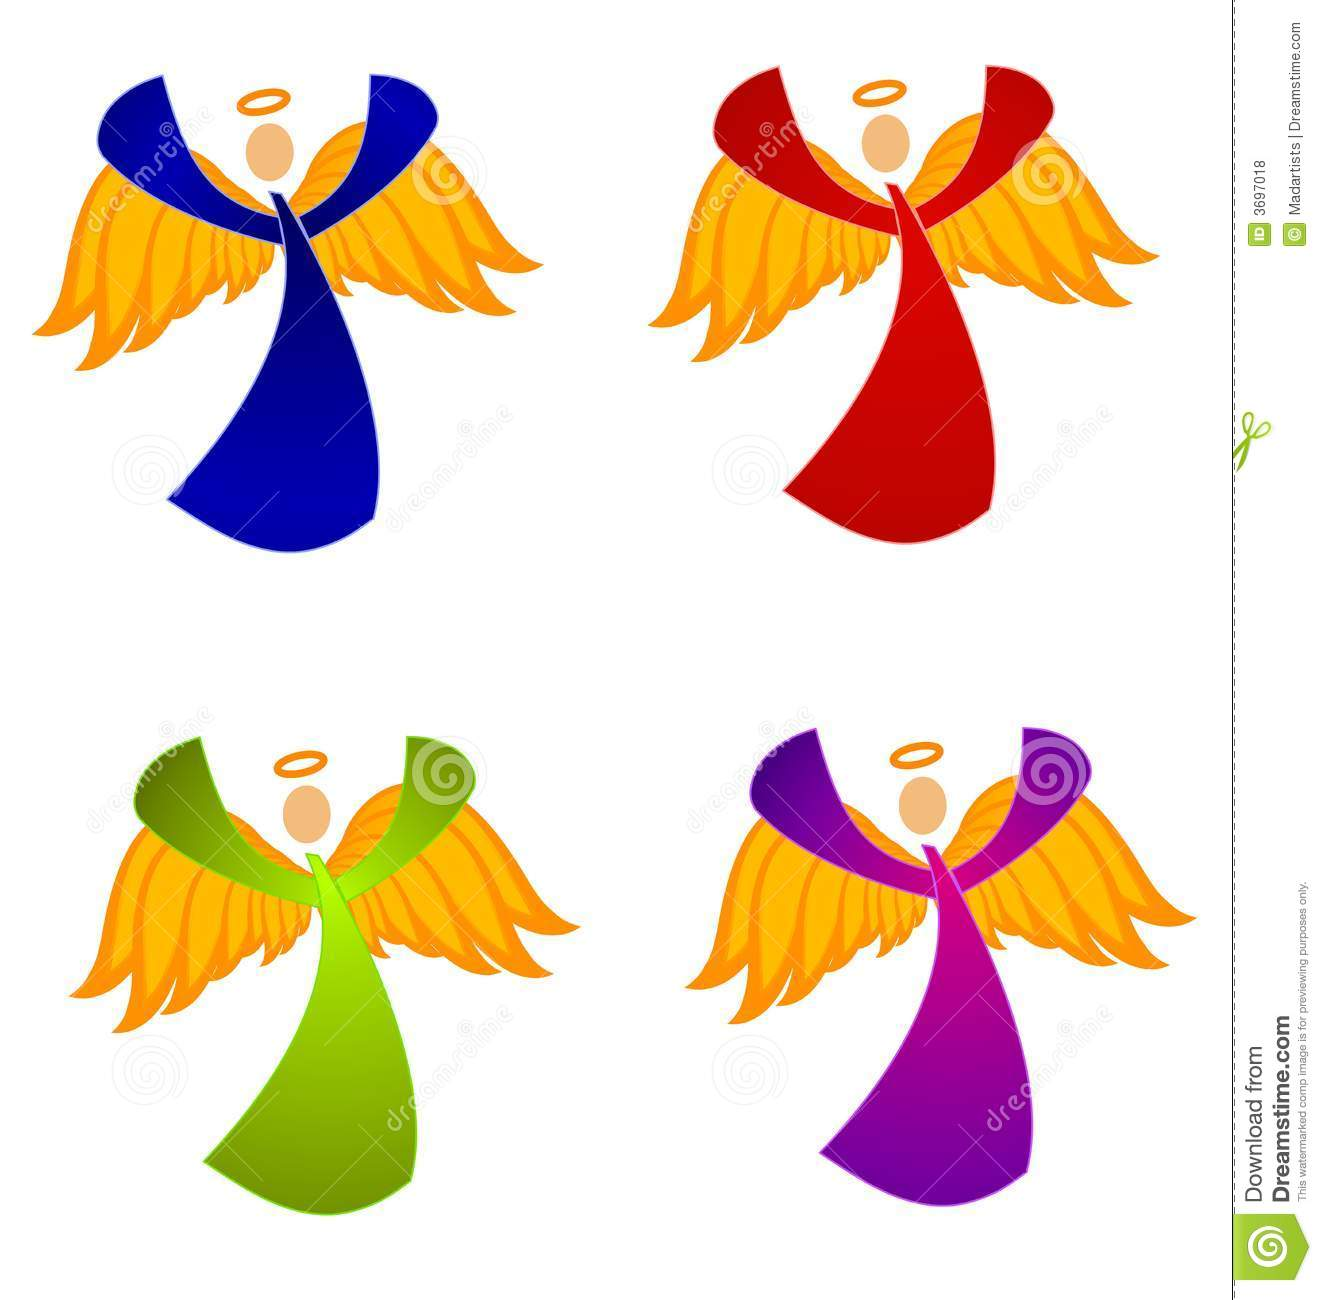 variety of christmas angels clip art stock illustration rh dreamstime com free vintage christmas angel clipart